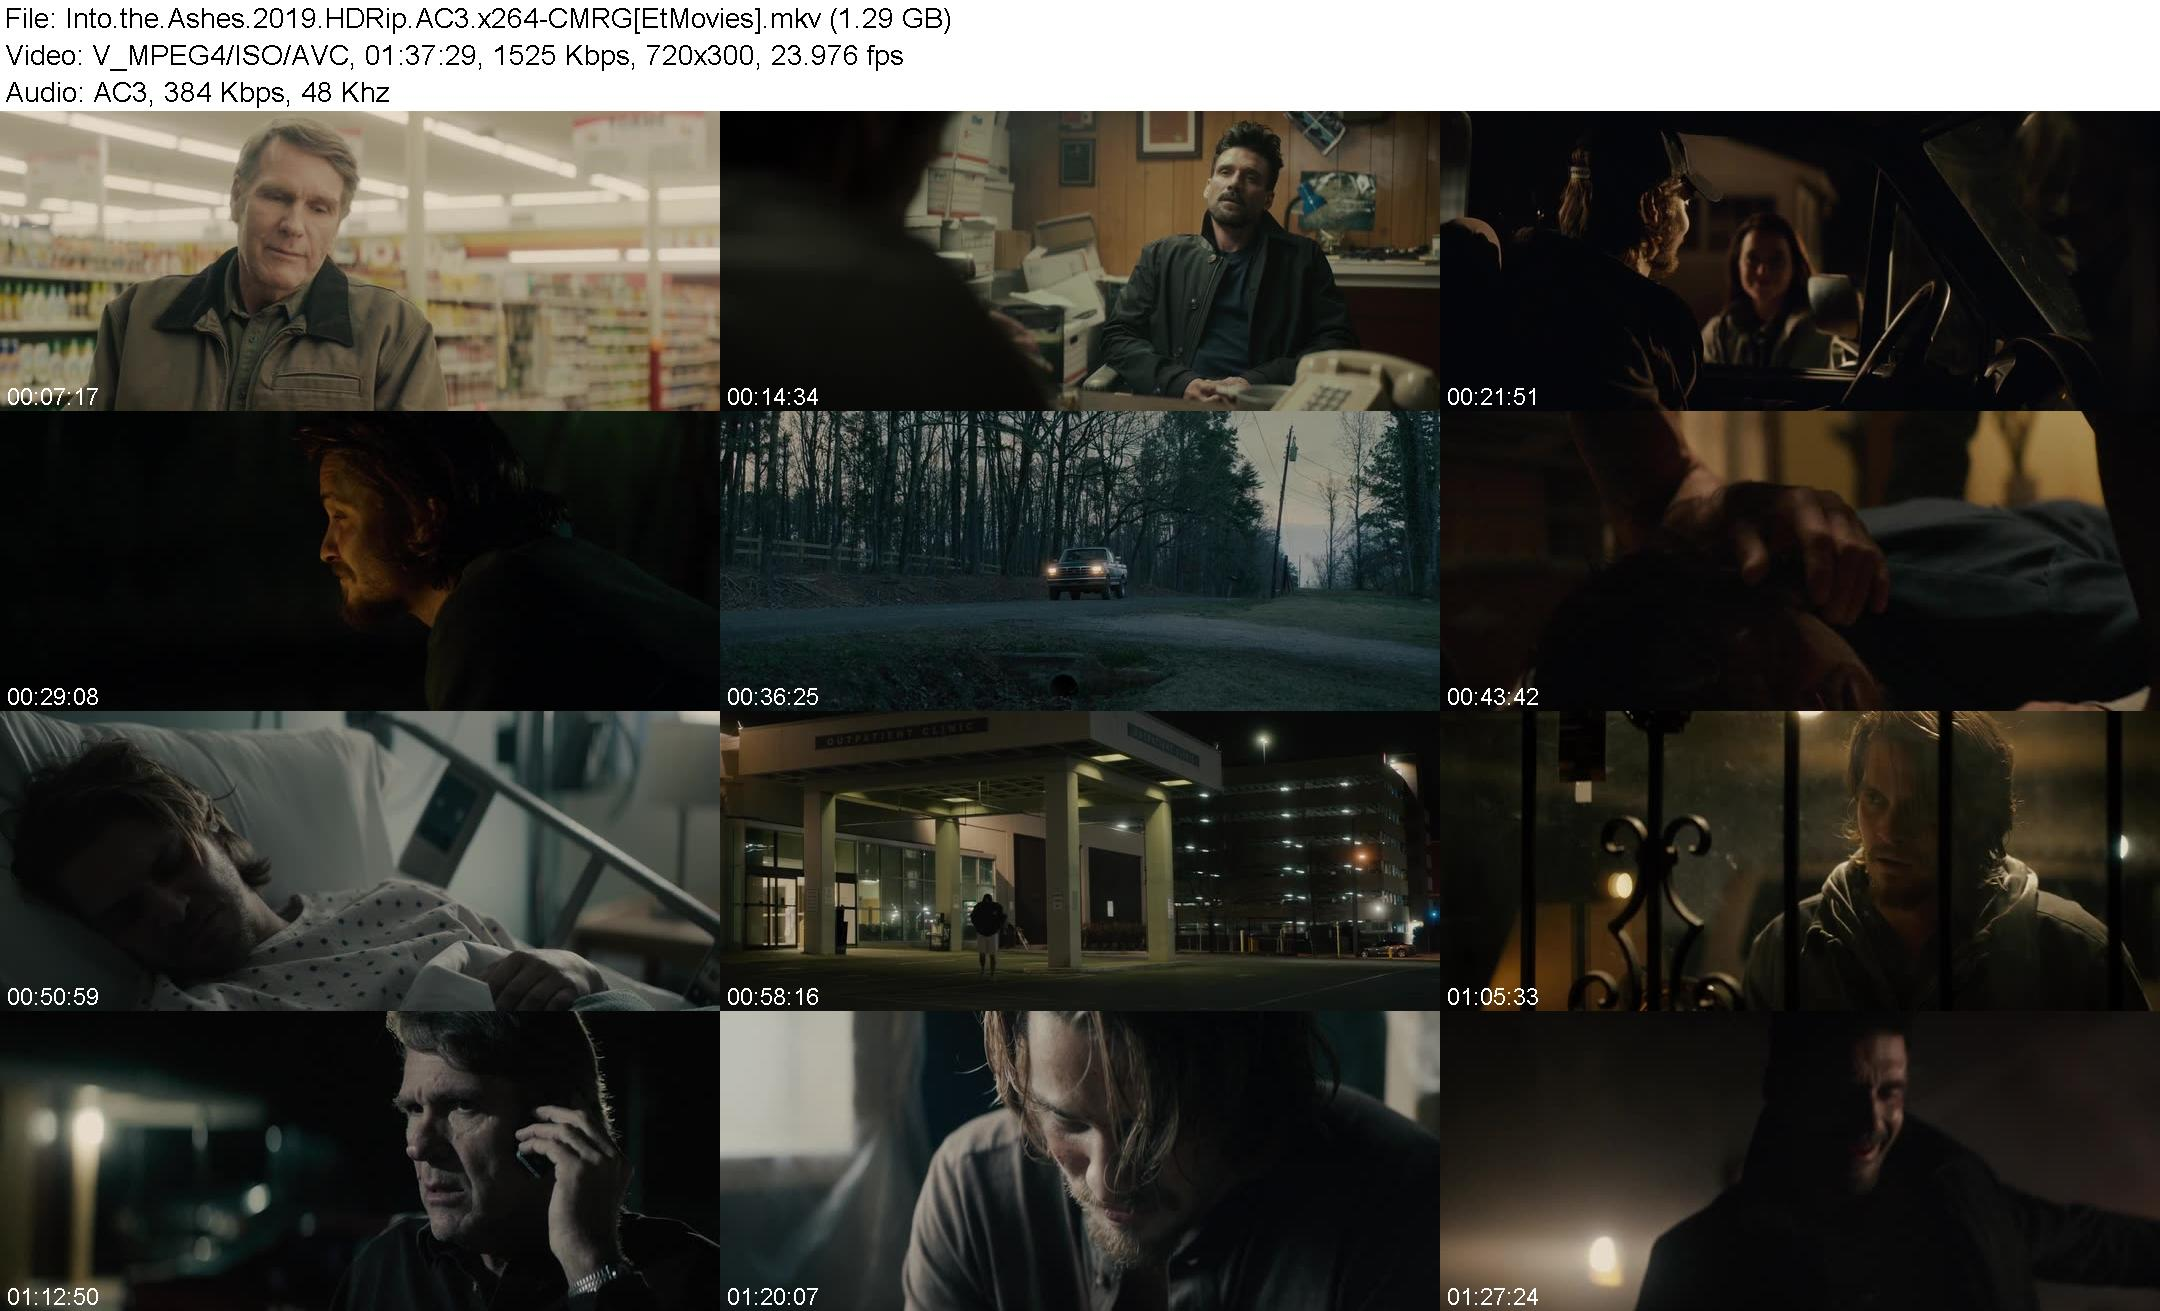 Download [RG/NF] Into the Ashes (2019) HDRip AC3 x264-CMRG